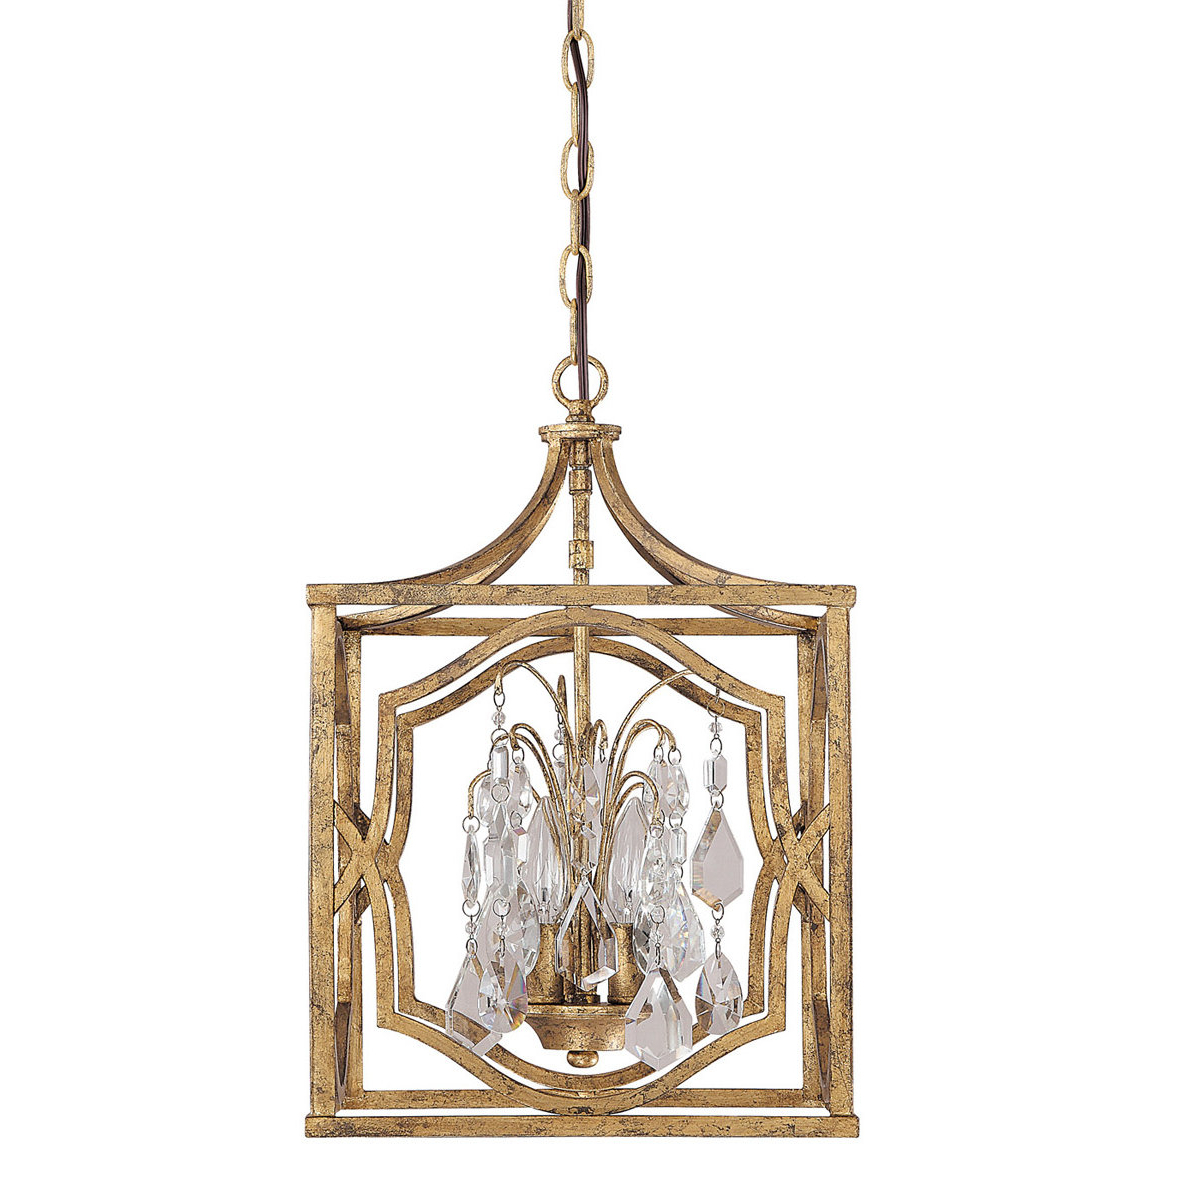 Nisbet 6 Light Lantern Geometric Pendants Intended For Best And Newest Willa Arlo Interiors Destrey 3 Light Lantern Pendant (View 12 of 20)